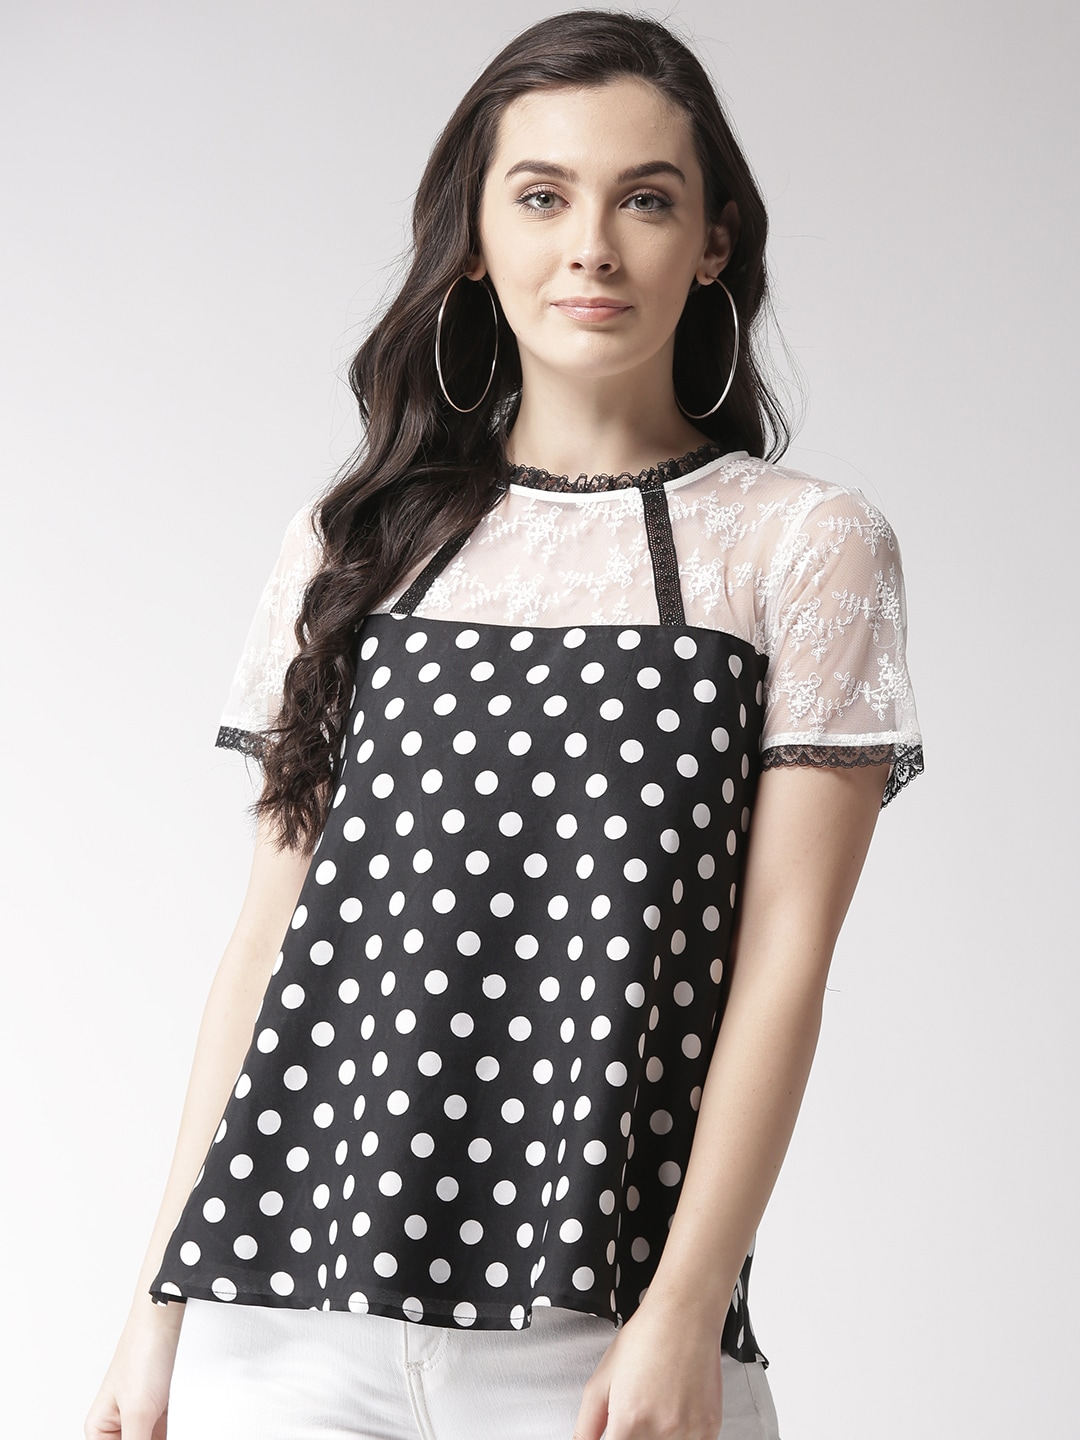 718b409d74d6ca Polka Dot Tops - Buy Polka Dot Tops online in India